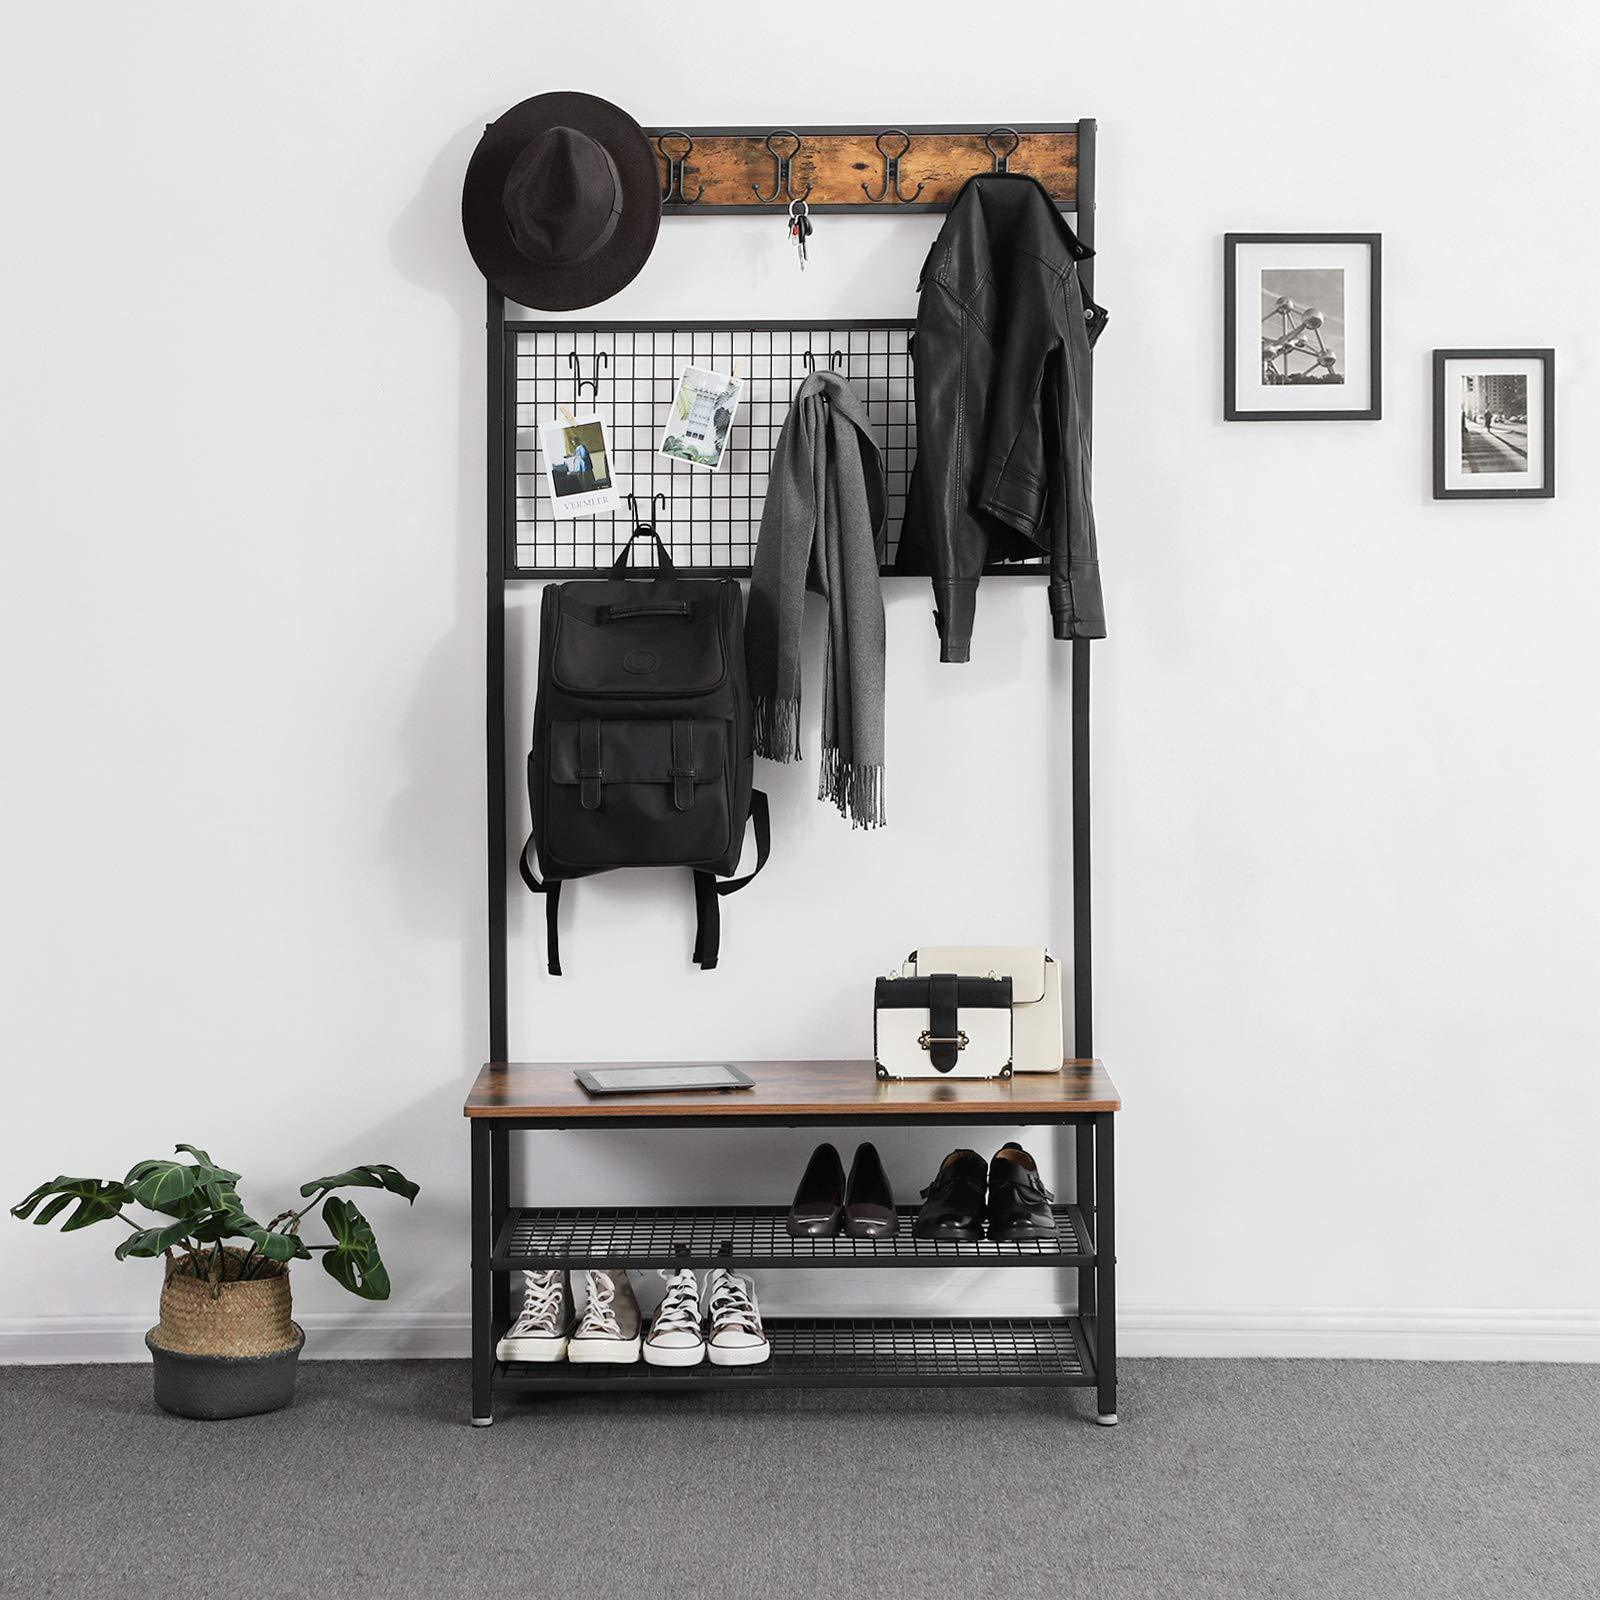 Select nice vasagle industrial coat stand shoe rack bench with grid memo board 9 hooks and storage shelves hall tree with stable metal frame rustic brown uhsr46bx